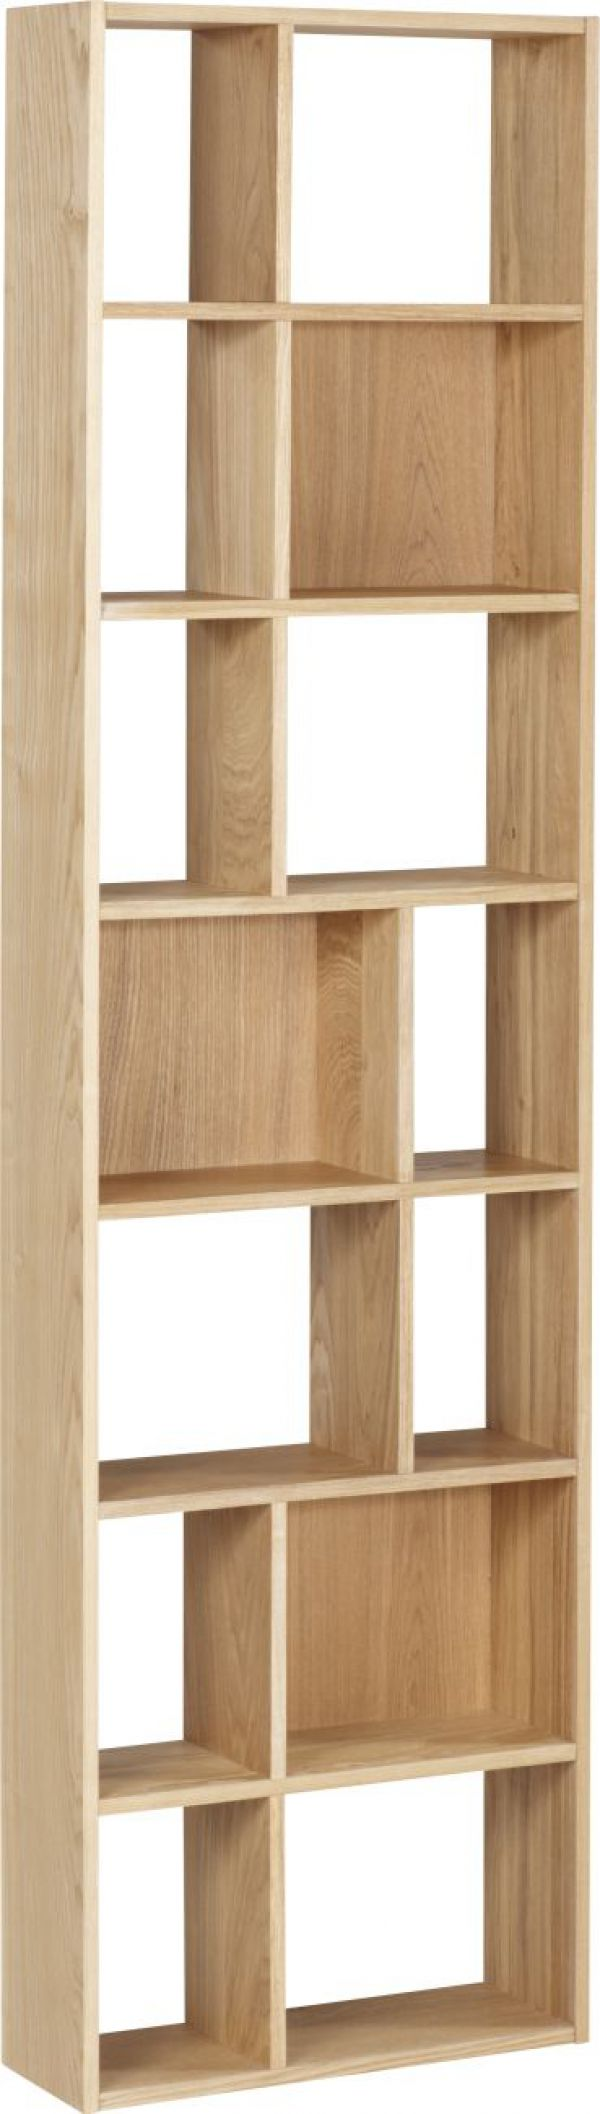 small solid buying bevel furniture benefits in bookcase fgbhtrz natural home oak a decor of